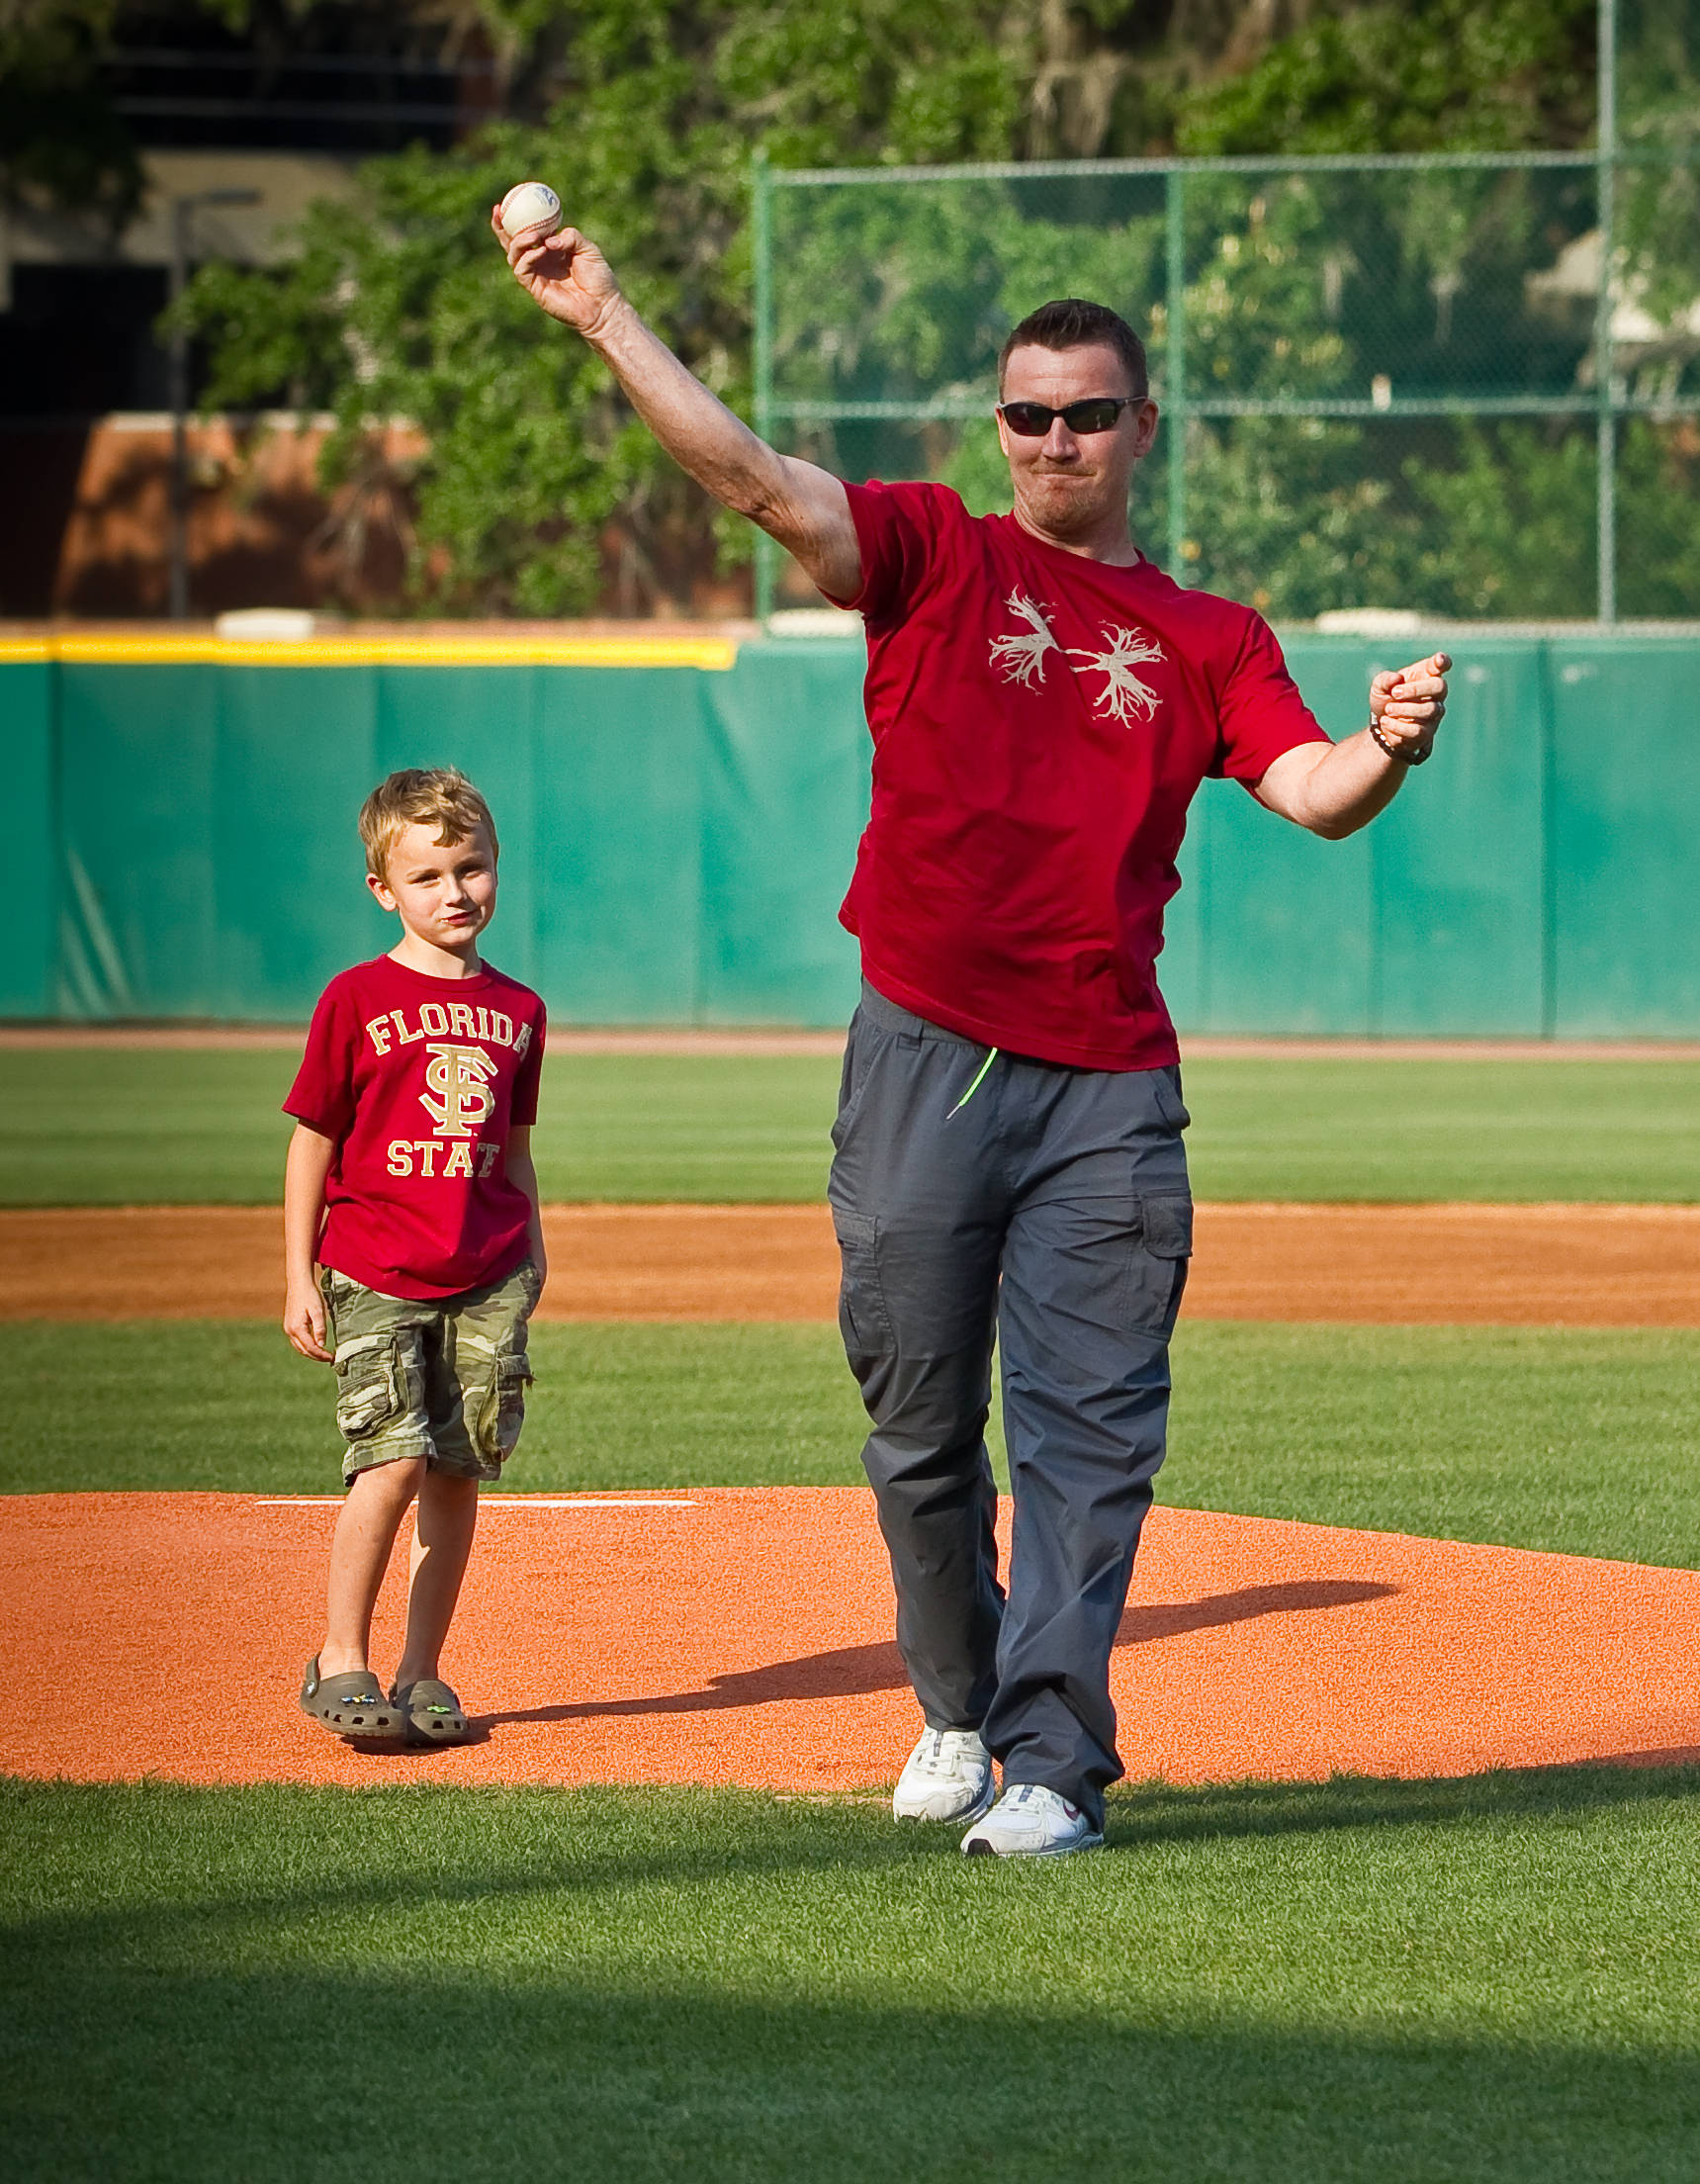 J.D. Drew and his son throw out the first pitch before the start of Tuesday's game against Florida.